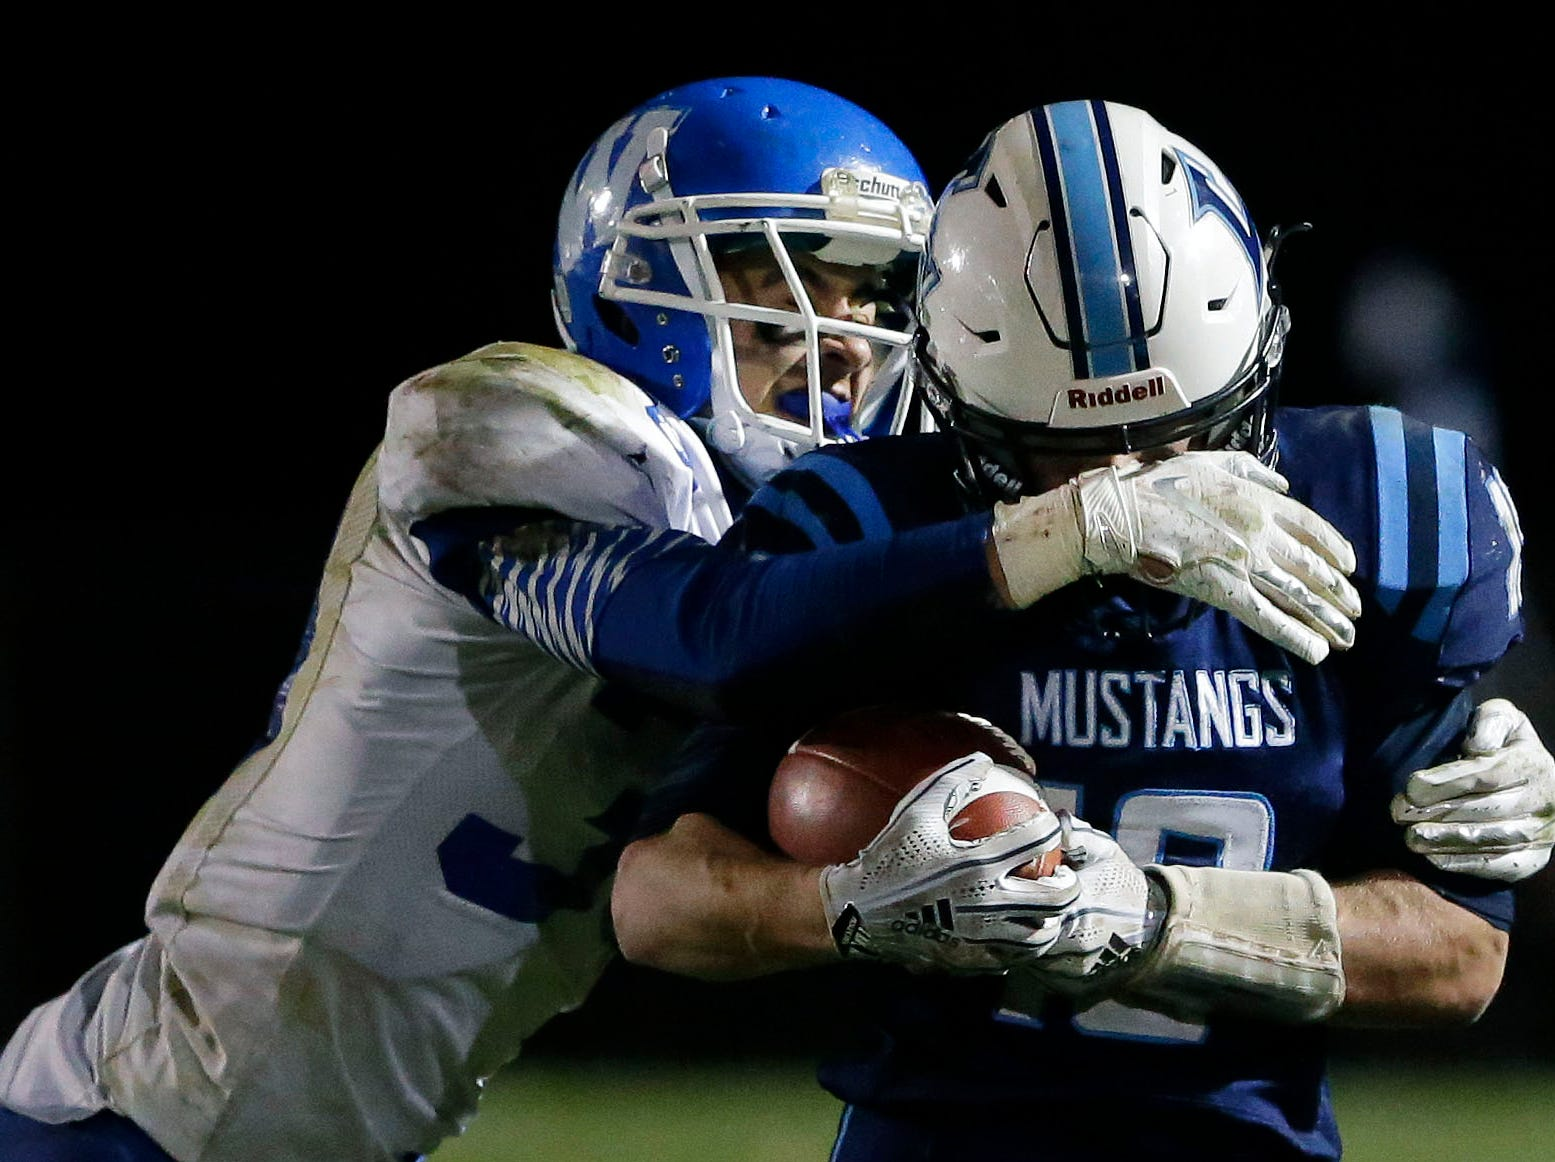 Jacob Lillge of Little Chute is tackled by Jeremy Van Zeeland of Wrightstown in a WIAA Division 4 Level 3 playoff game Friday, November 2, 2018, at Fitzpatrick Field in Little Chute, Wis.Ron Page/USA TODAY NETWORK-Wisconsin